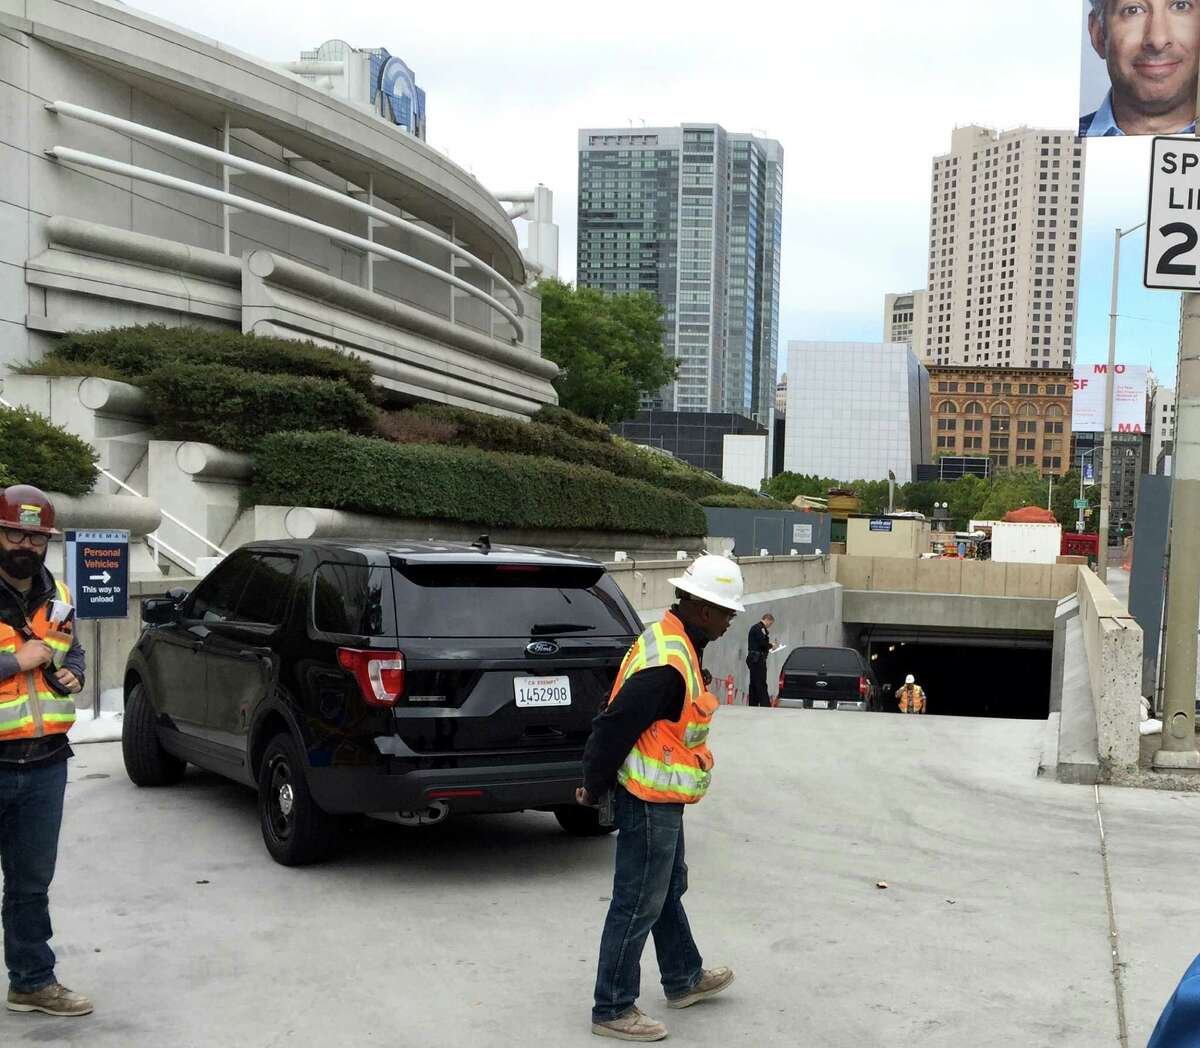 A construction worker was killed in an apparent accident at Moscone Center Friday morning. Police said the man was in the bucket of a cherry picker when he was killed.